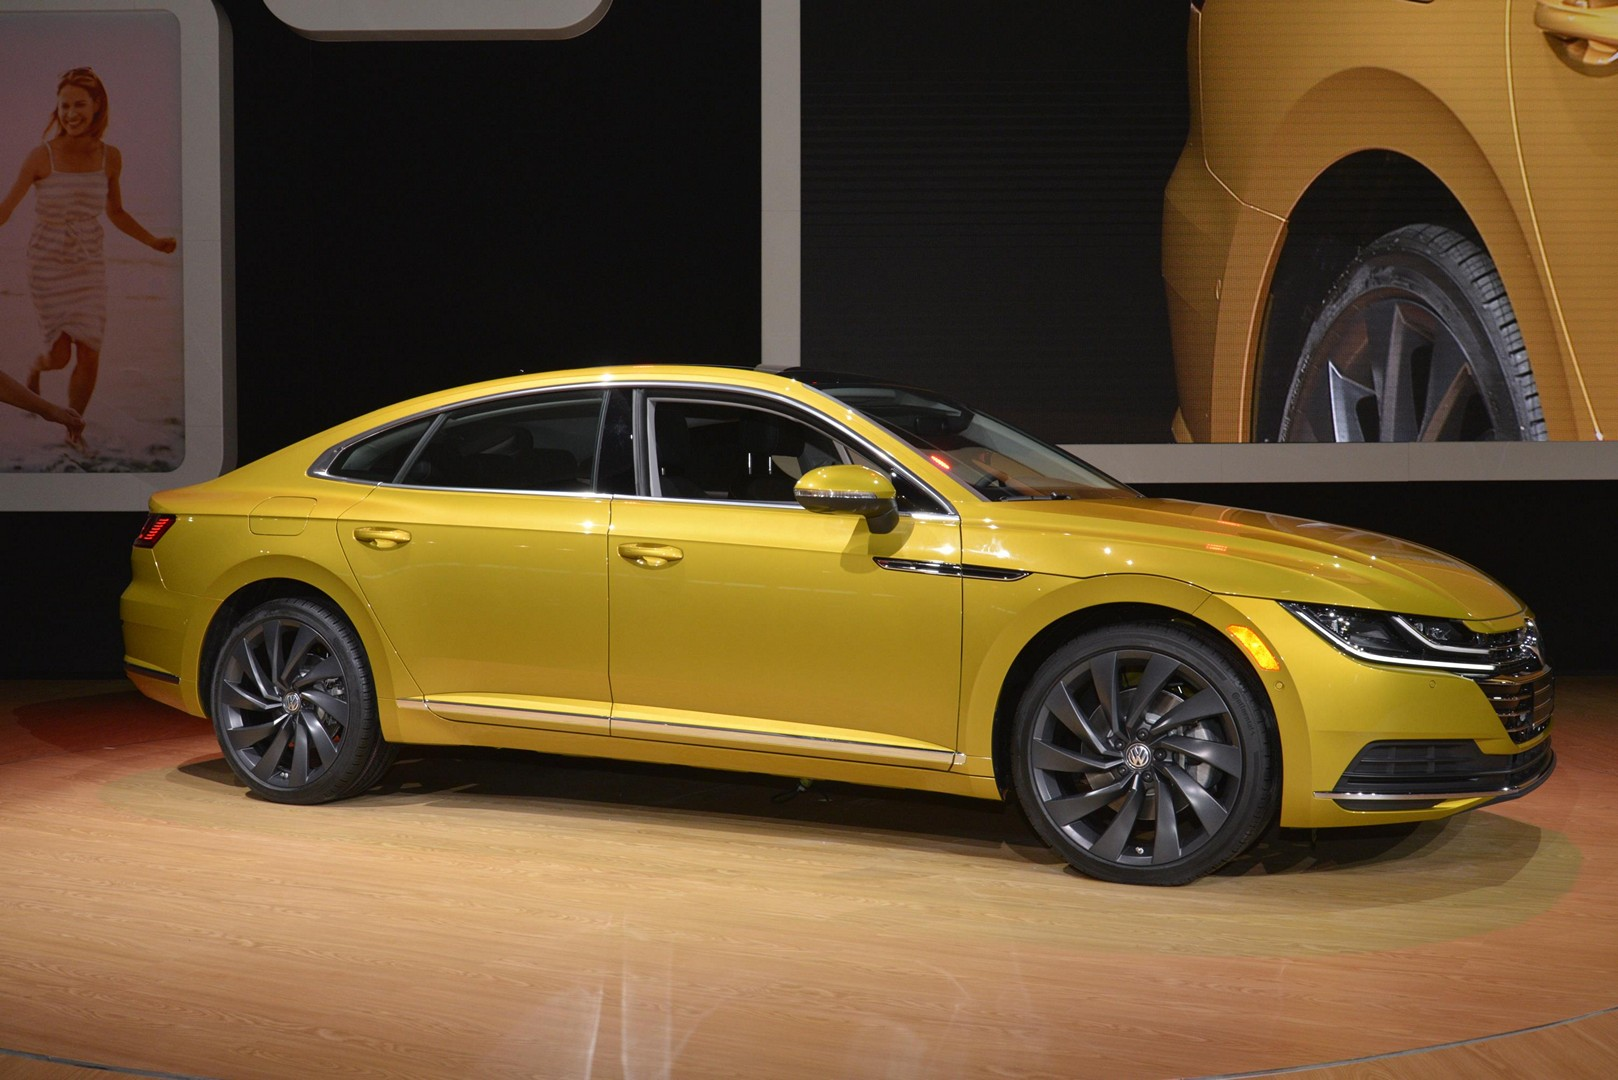 Volkswagen Arteon Makes US Debut in the Windy City